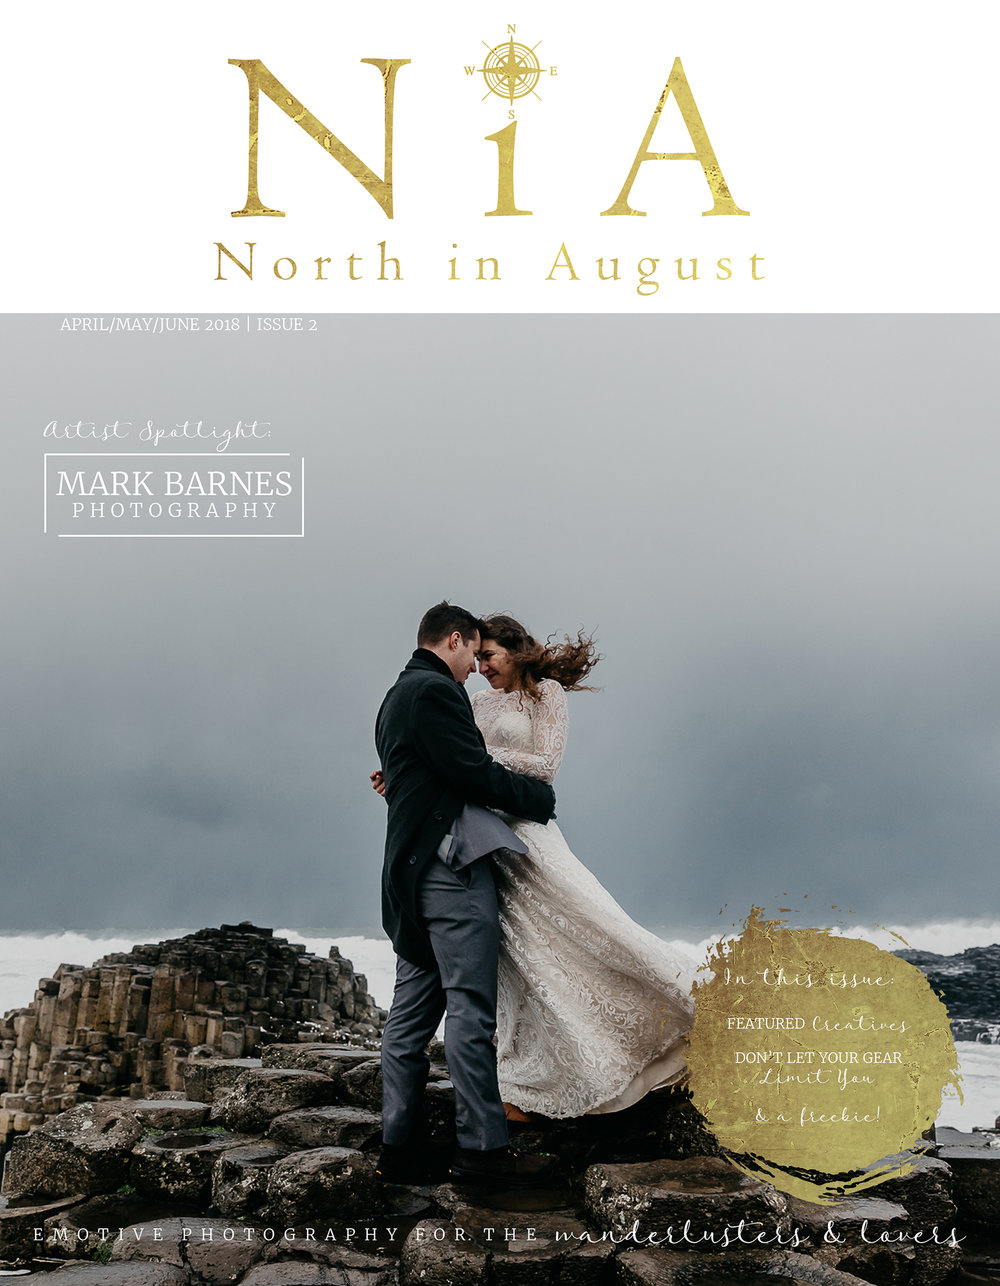 North in August | Issue 2